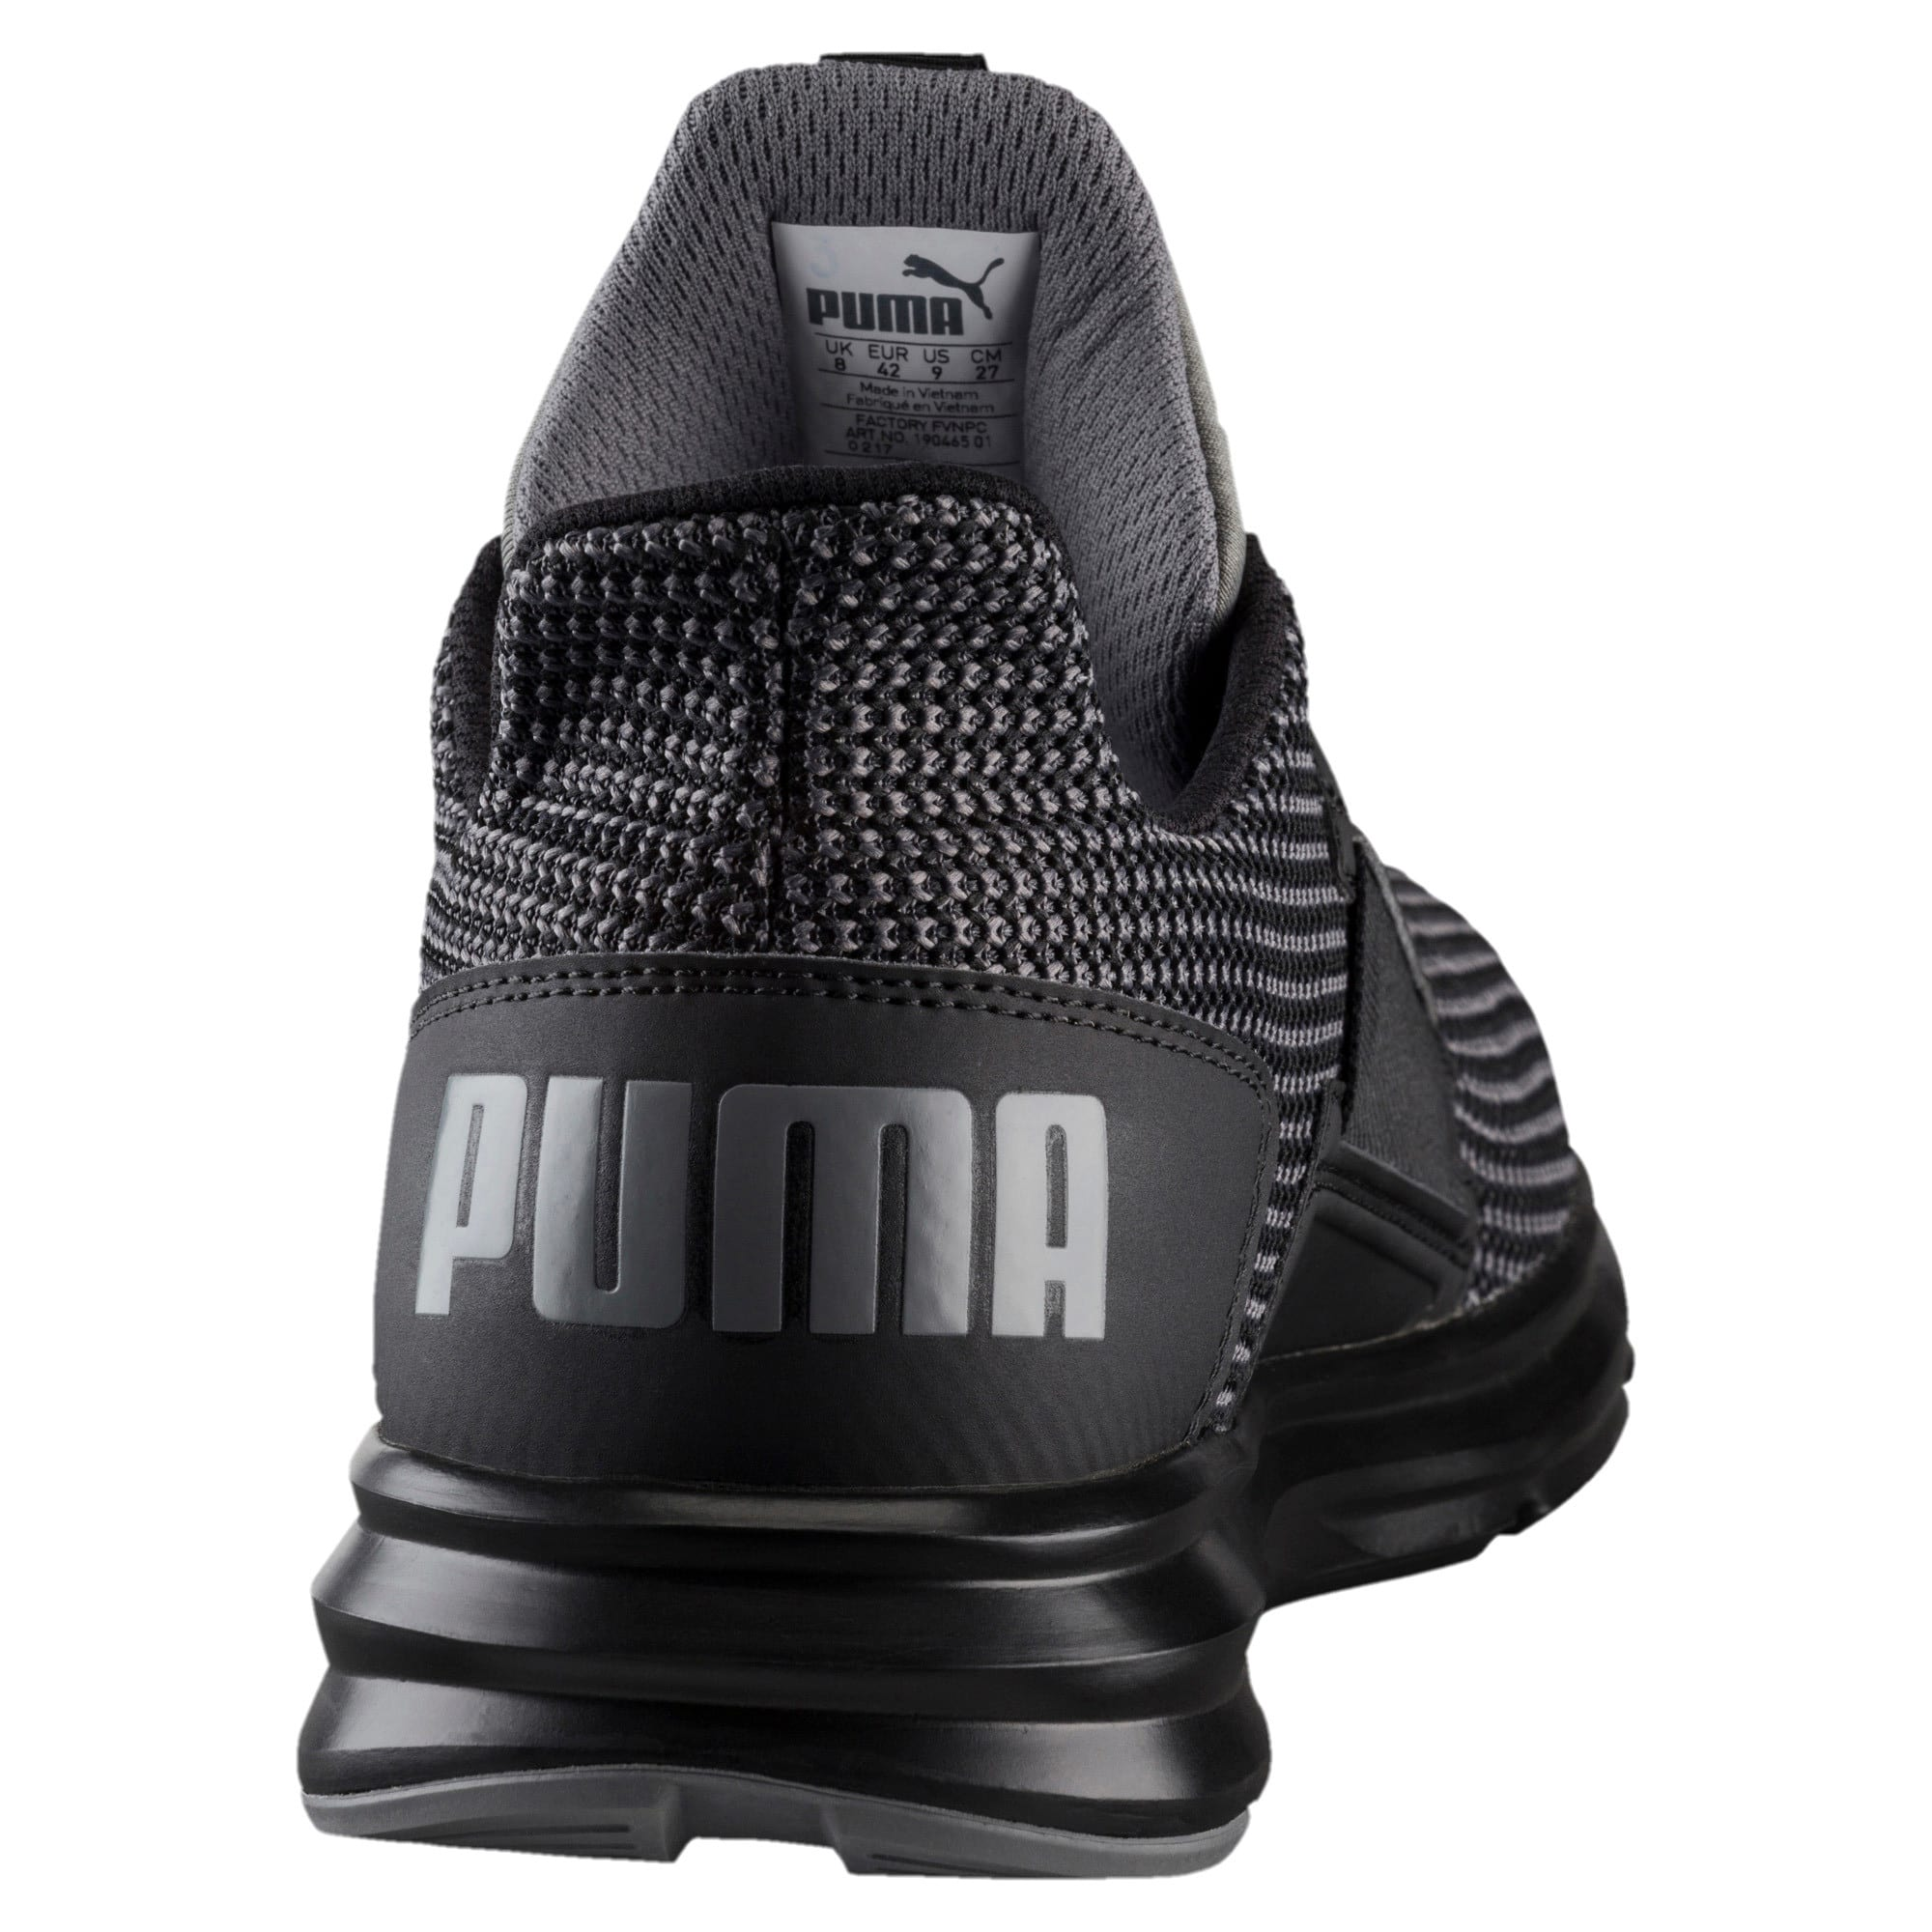 Thumbnail 2 of Enzo Street Knit Men's Running Shoes, QUIET SHADE-Puma Black, medium-IND